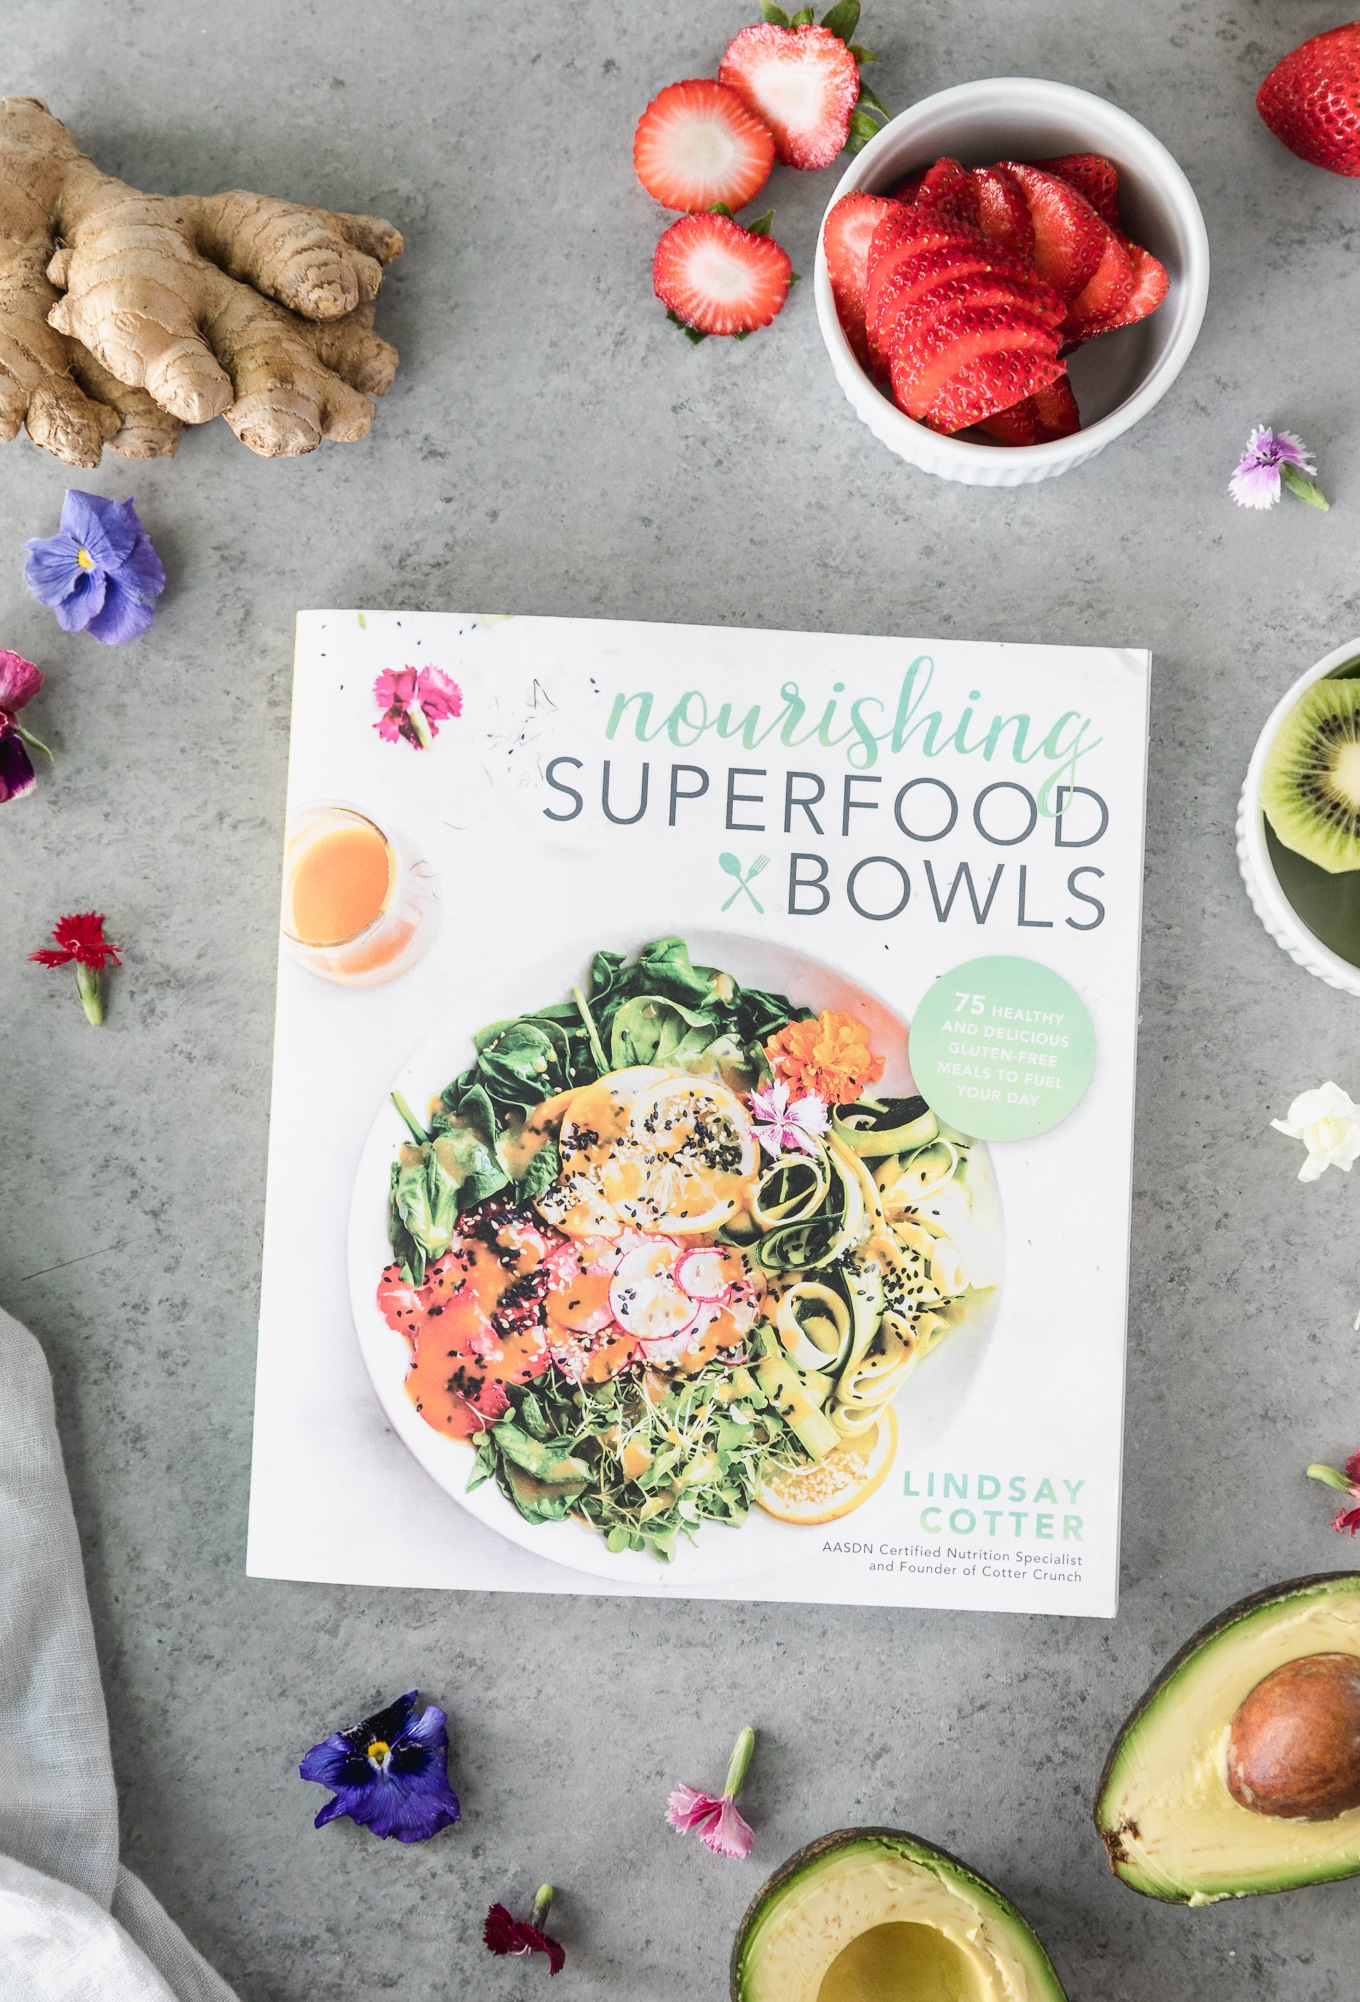 Overhead shot of the nourishing superfood bowls cookbook with bowls of sliced strawberries, kiwi, avocado, fresh ginger, edible flowers, and a linen around it